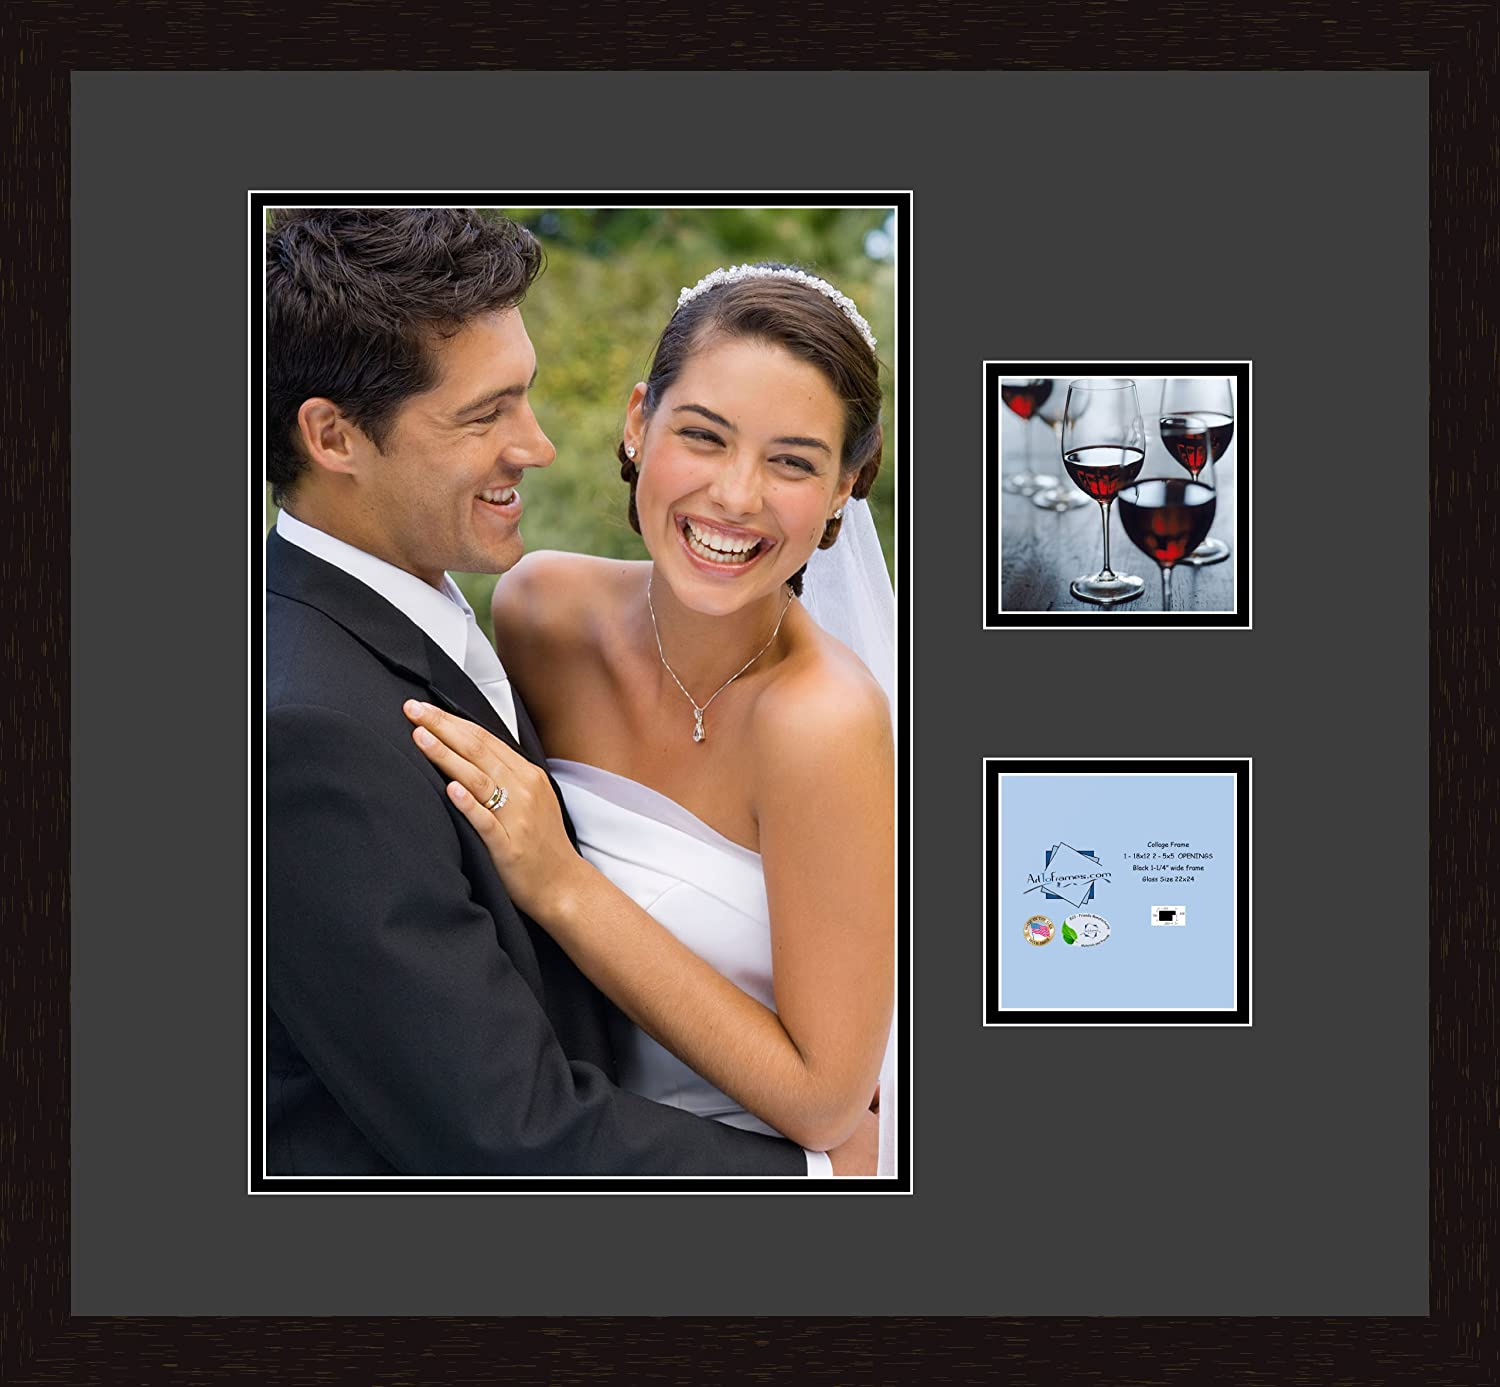 Art to Frames Double-Multimat-483-89//89-FRBW26061 Collage Frame Photo Mat Double Mat with 1-12x18 and 2-5x5 Openings and Espresso Frame